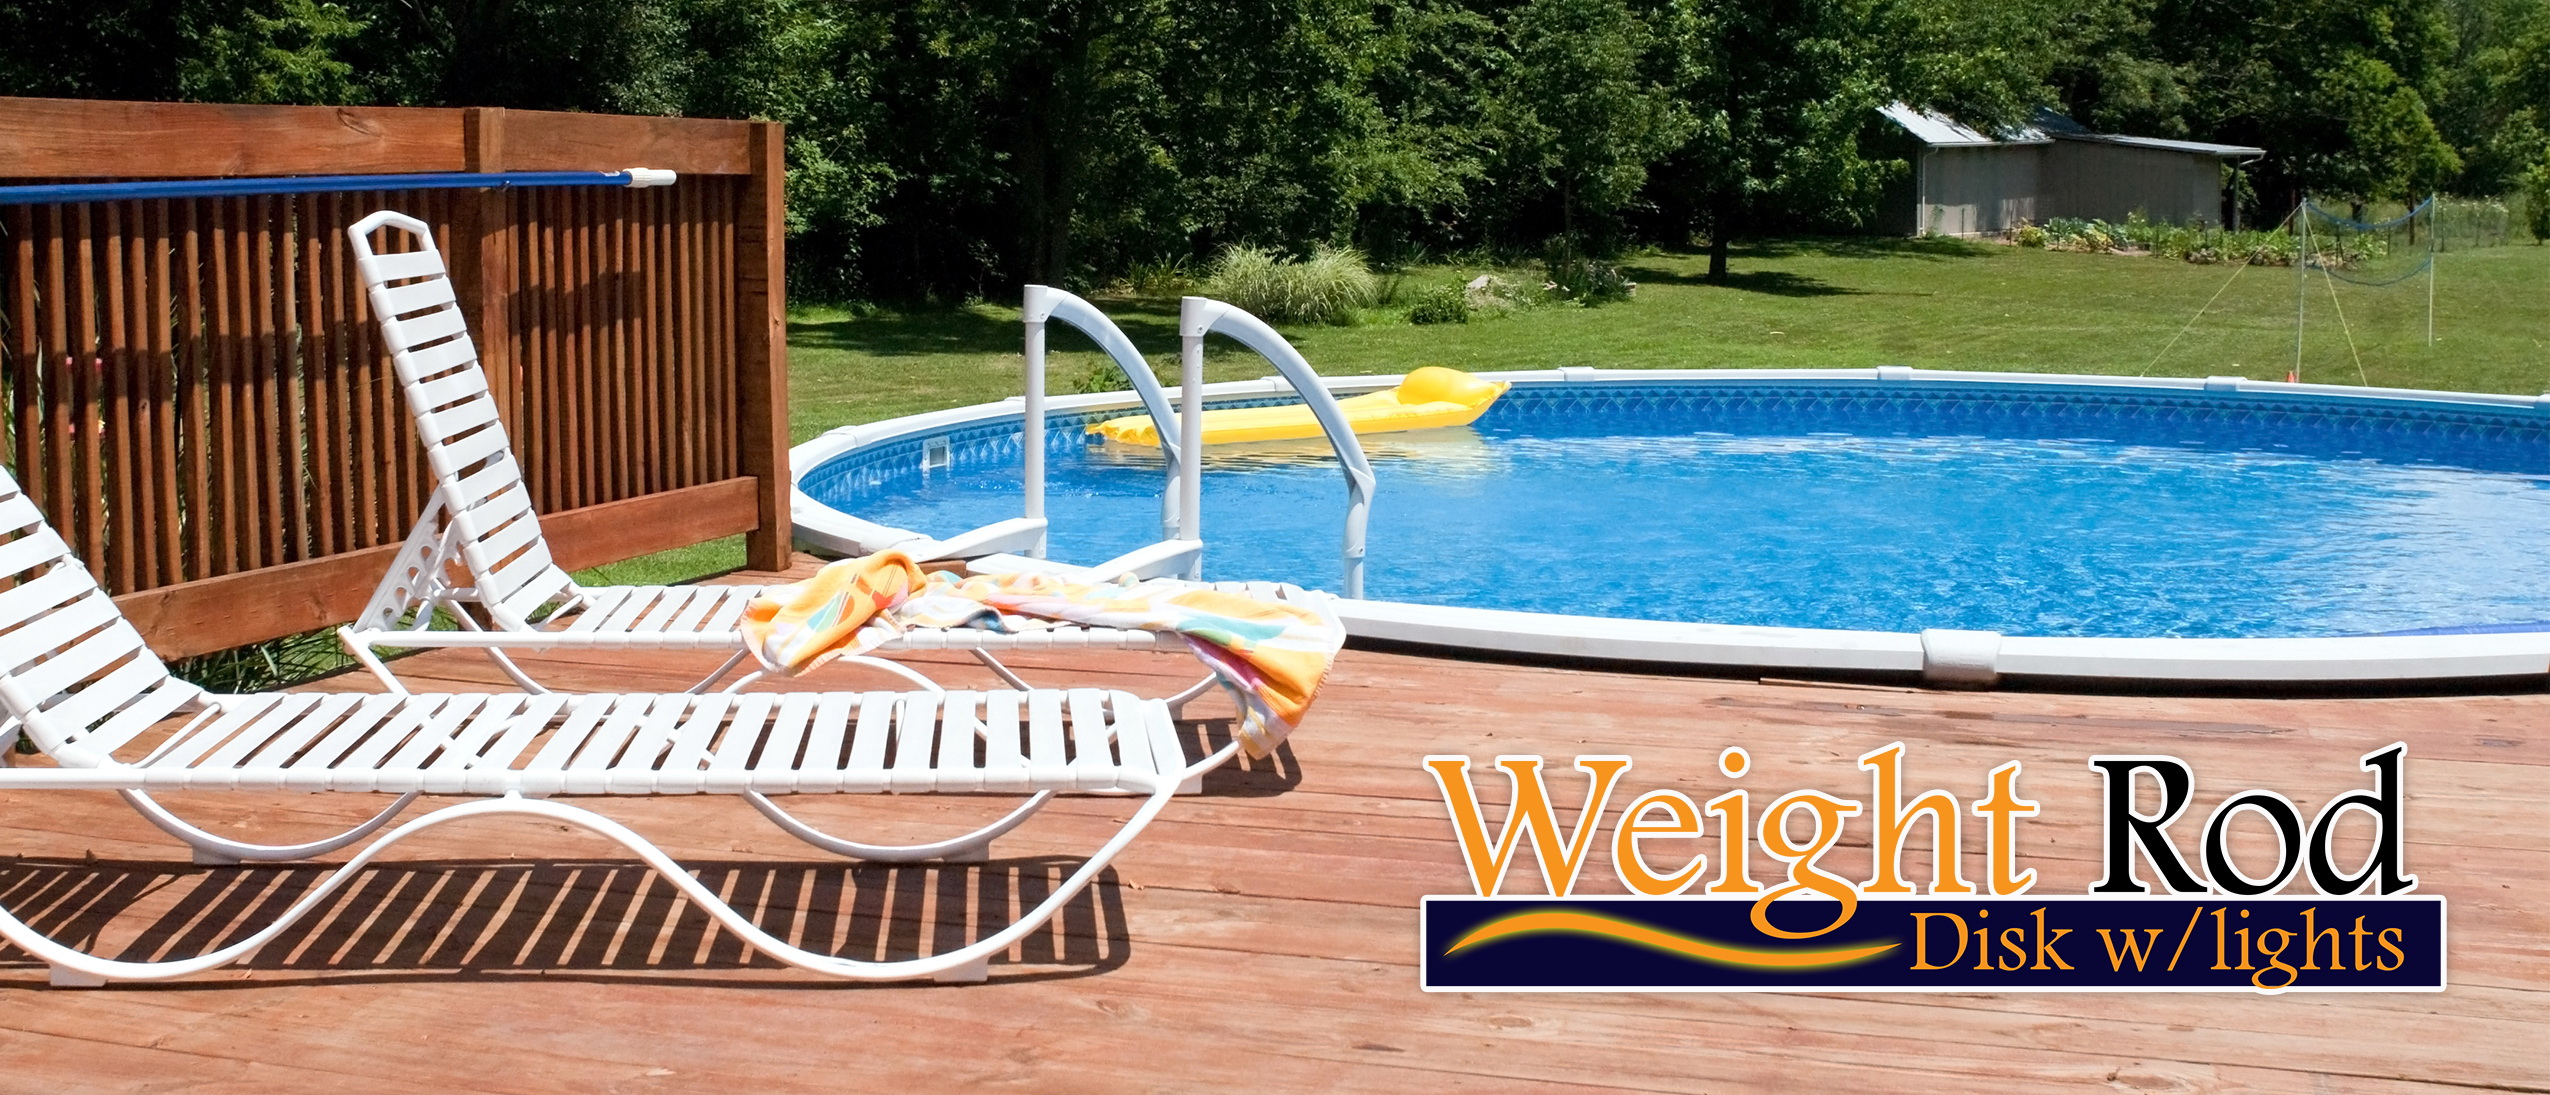 World Patent Marketing Invention Team Introduces The Pool Boat Ladder Weight A New Swimming